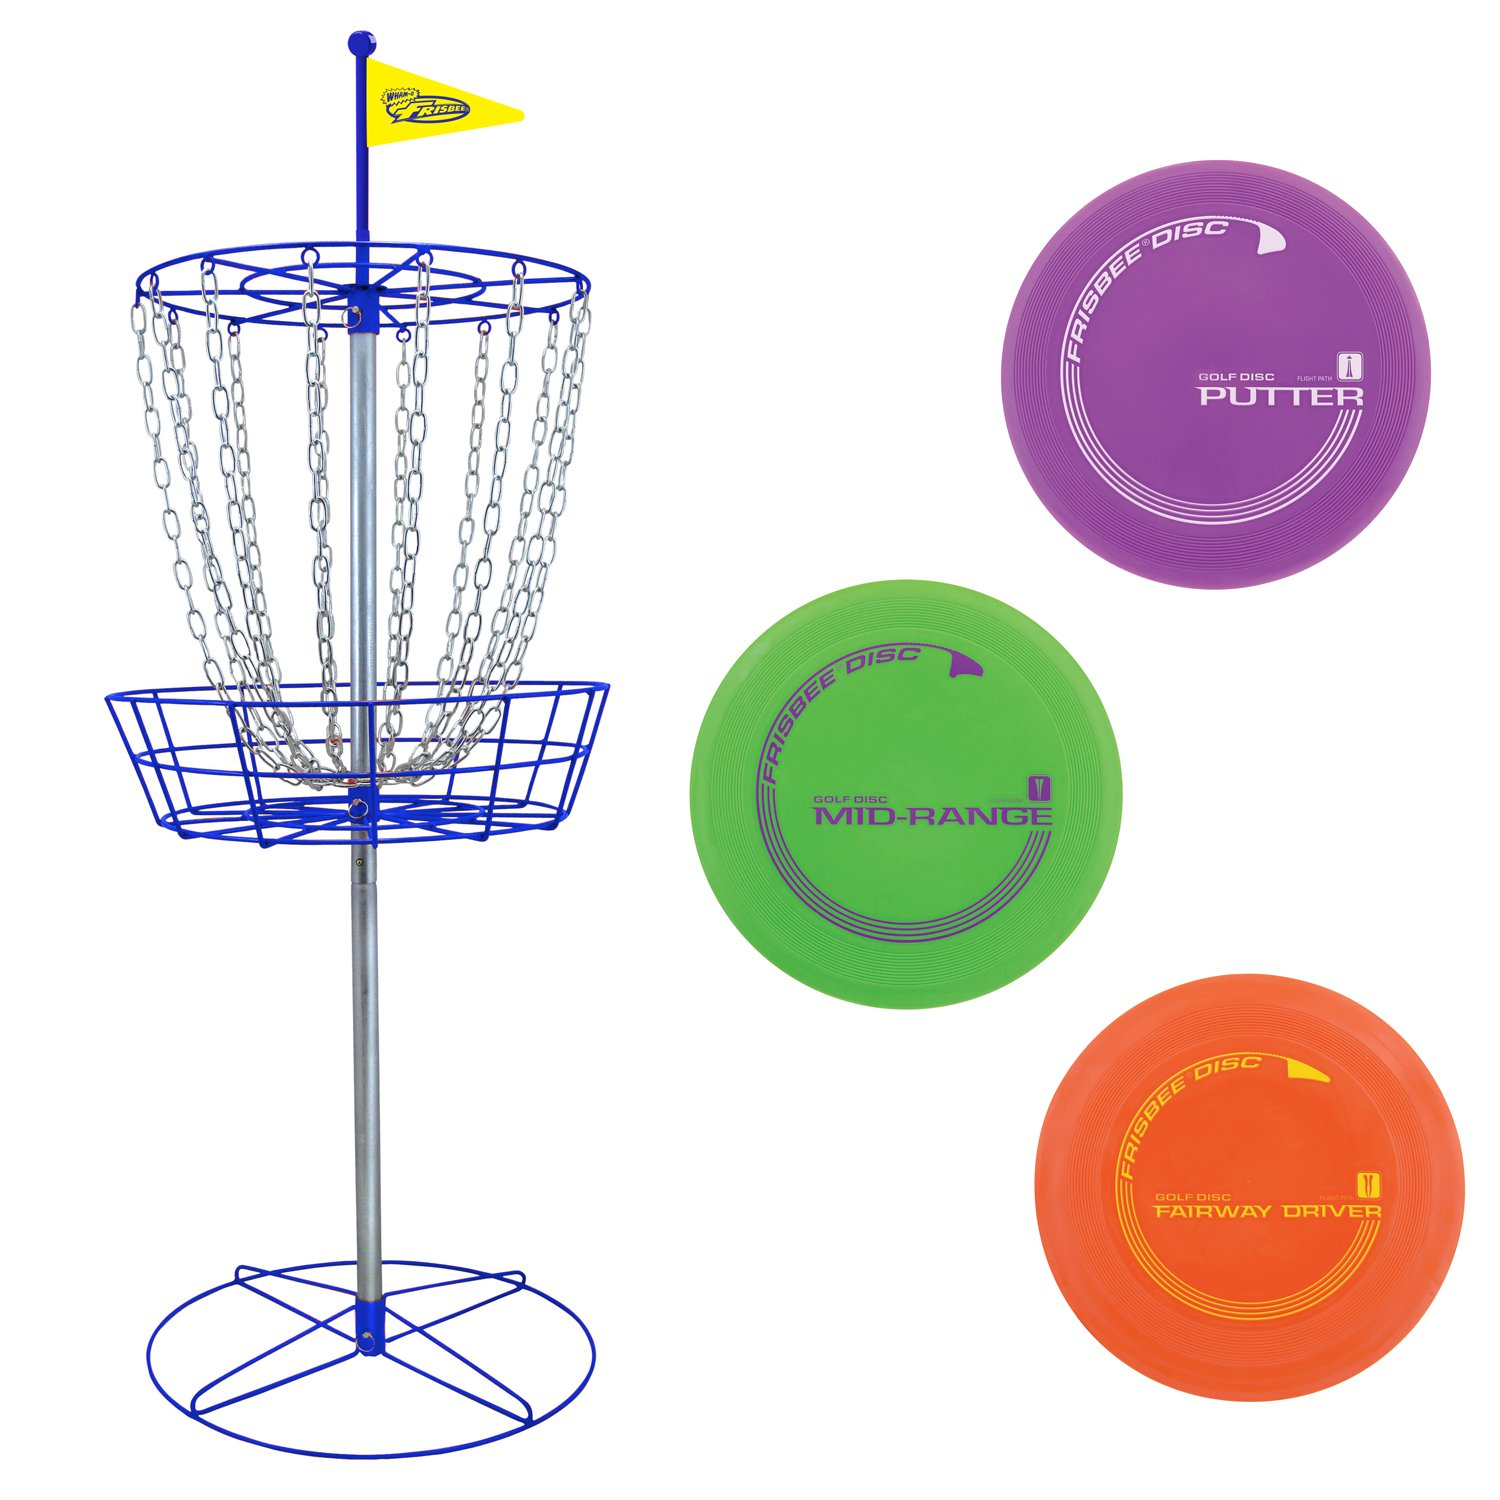 Wham-O PDGA Approved Official Frisbee Disc Golf Set with 3 Discs and Blue Target by Wham-O